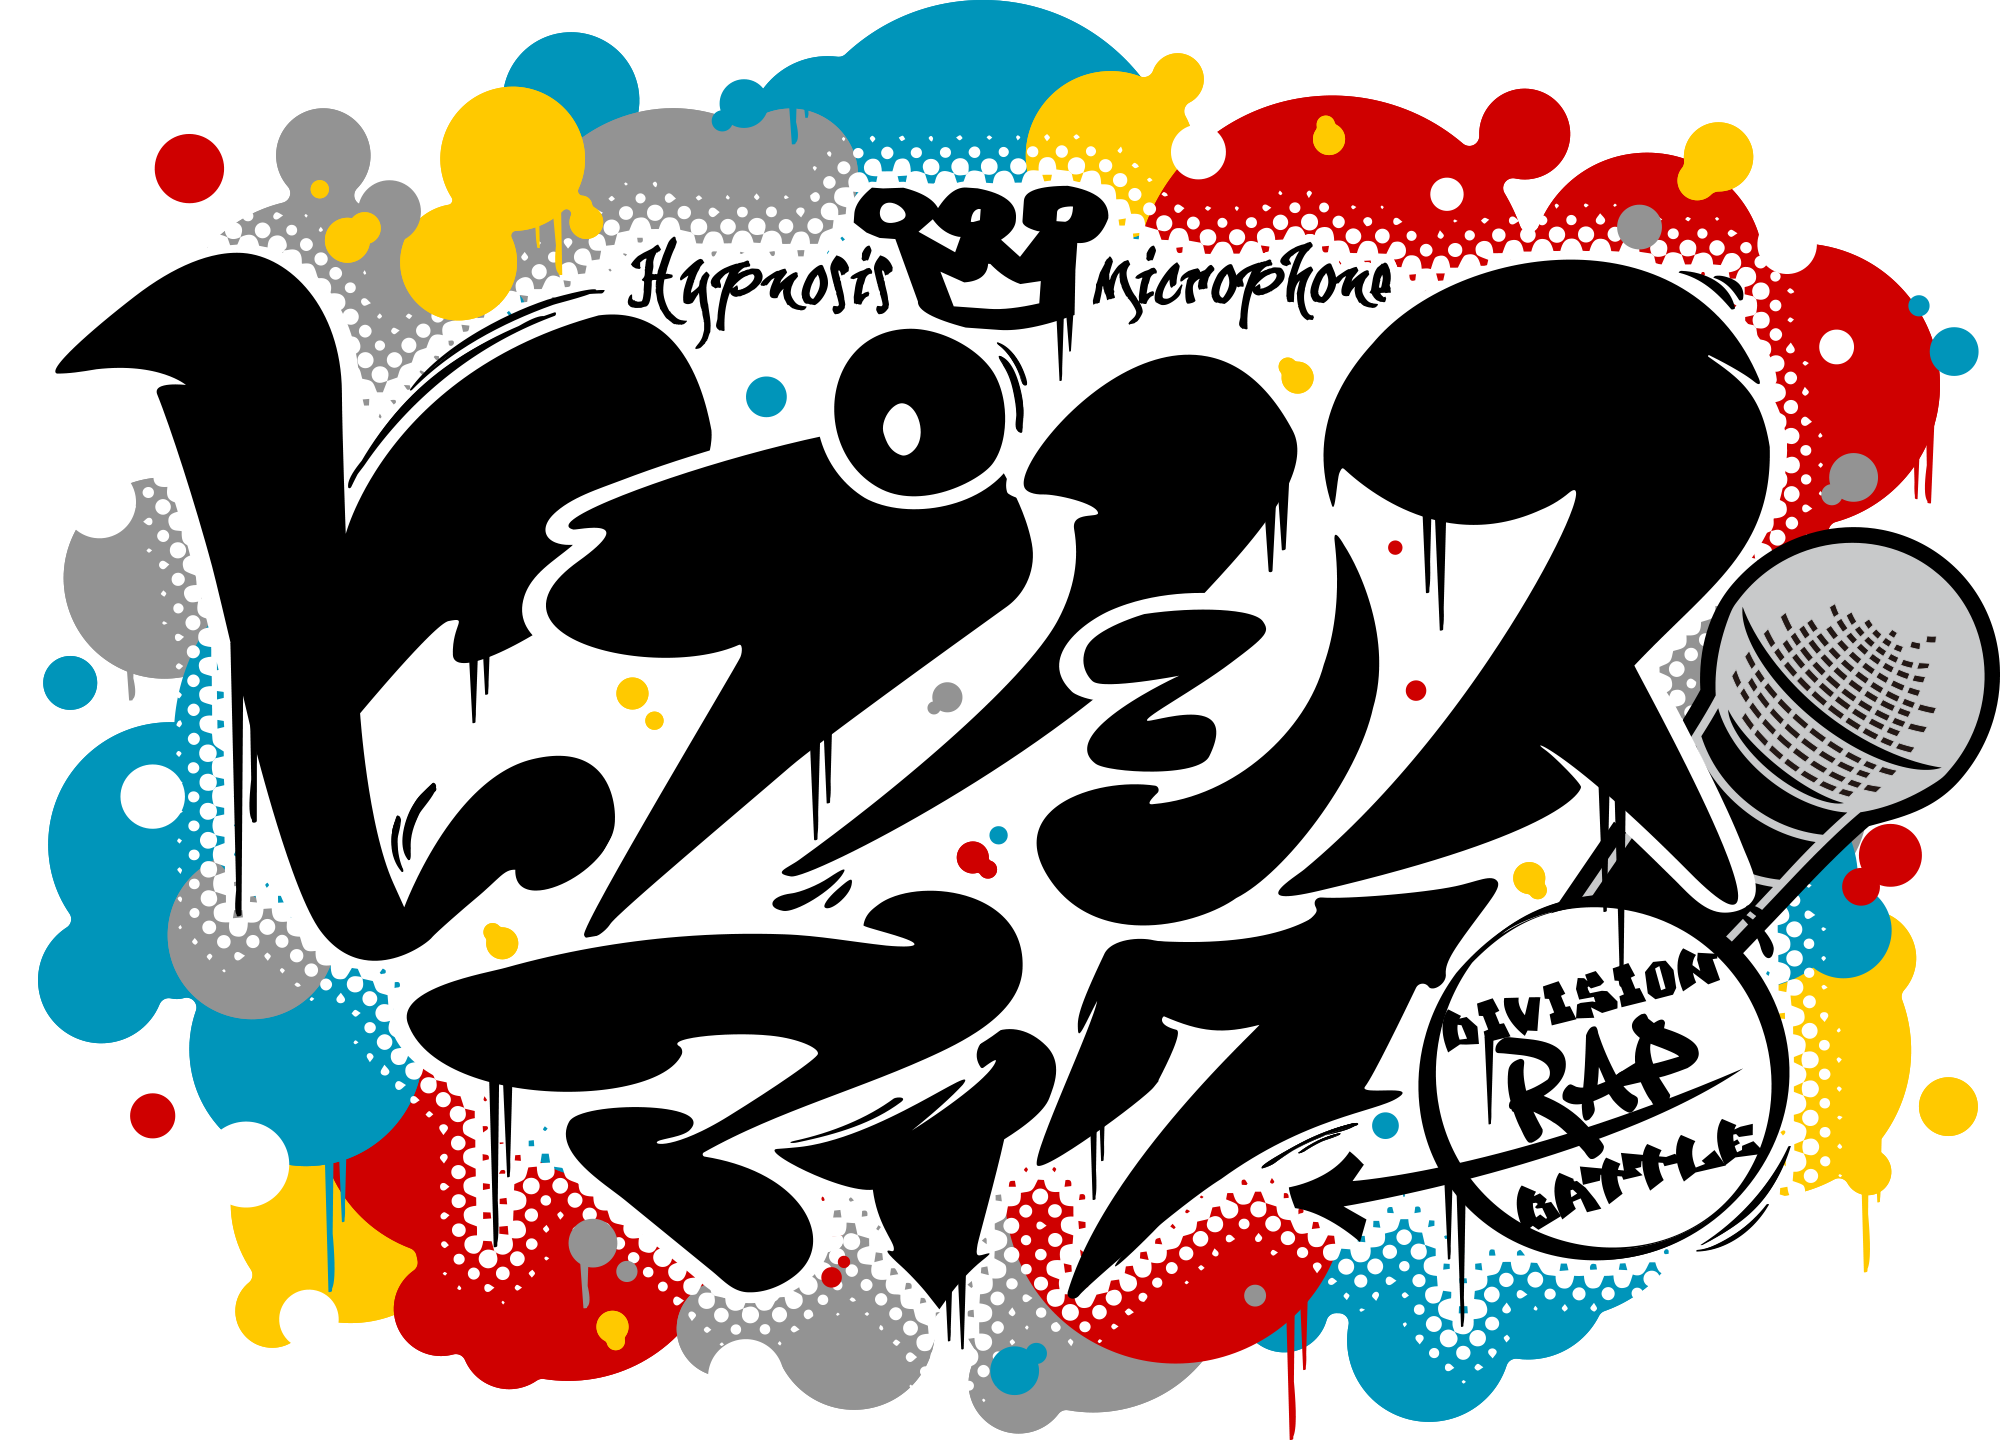 Microphone clipart rapper. Image logo png hypnosis